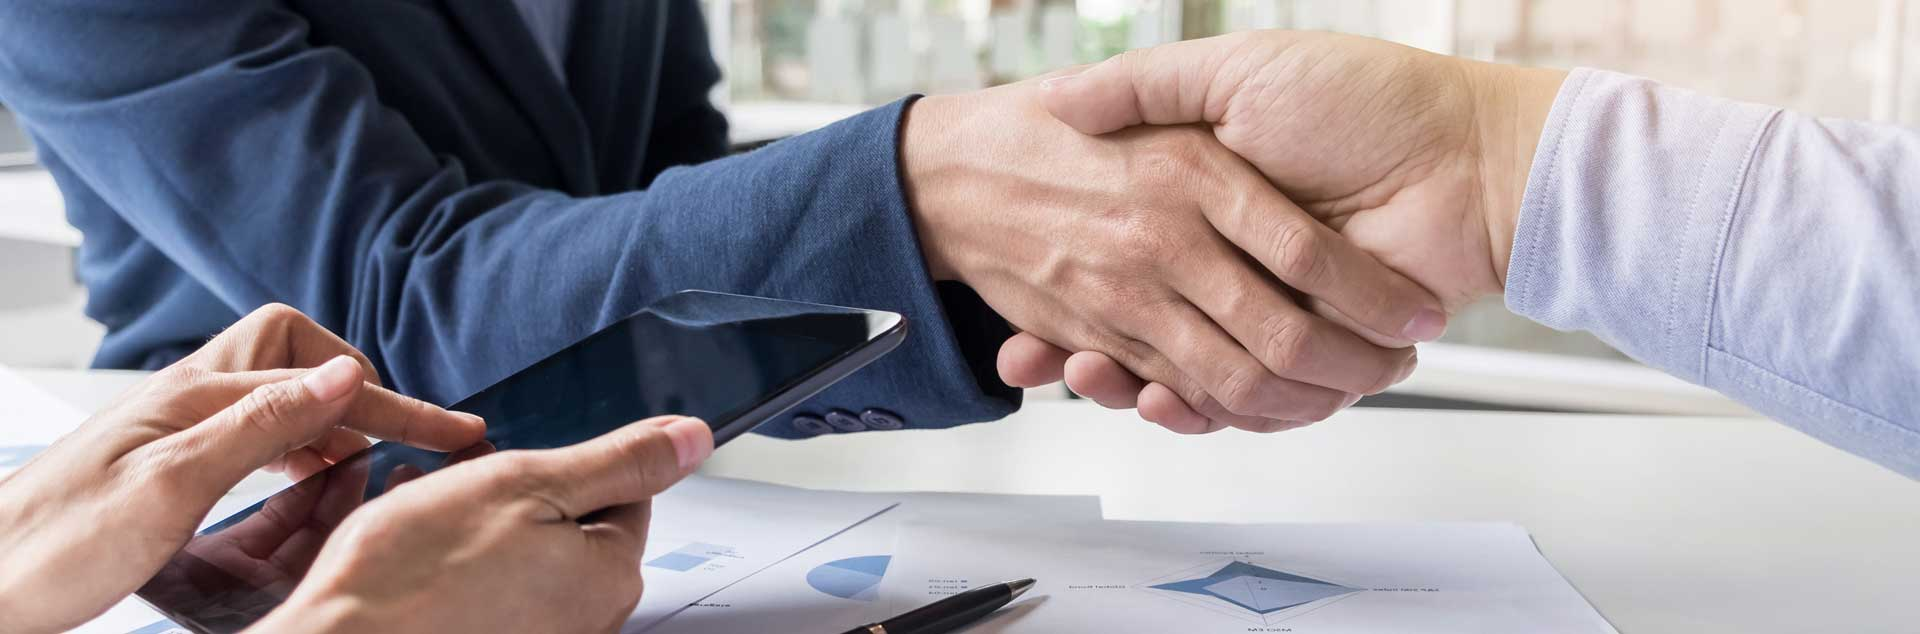 in raise business handshake of two men demonstrating their agreement to sign agreement or contract between their firms companies enterprises